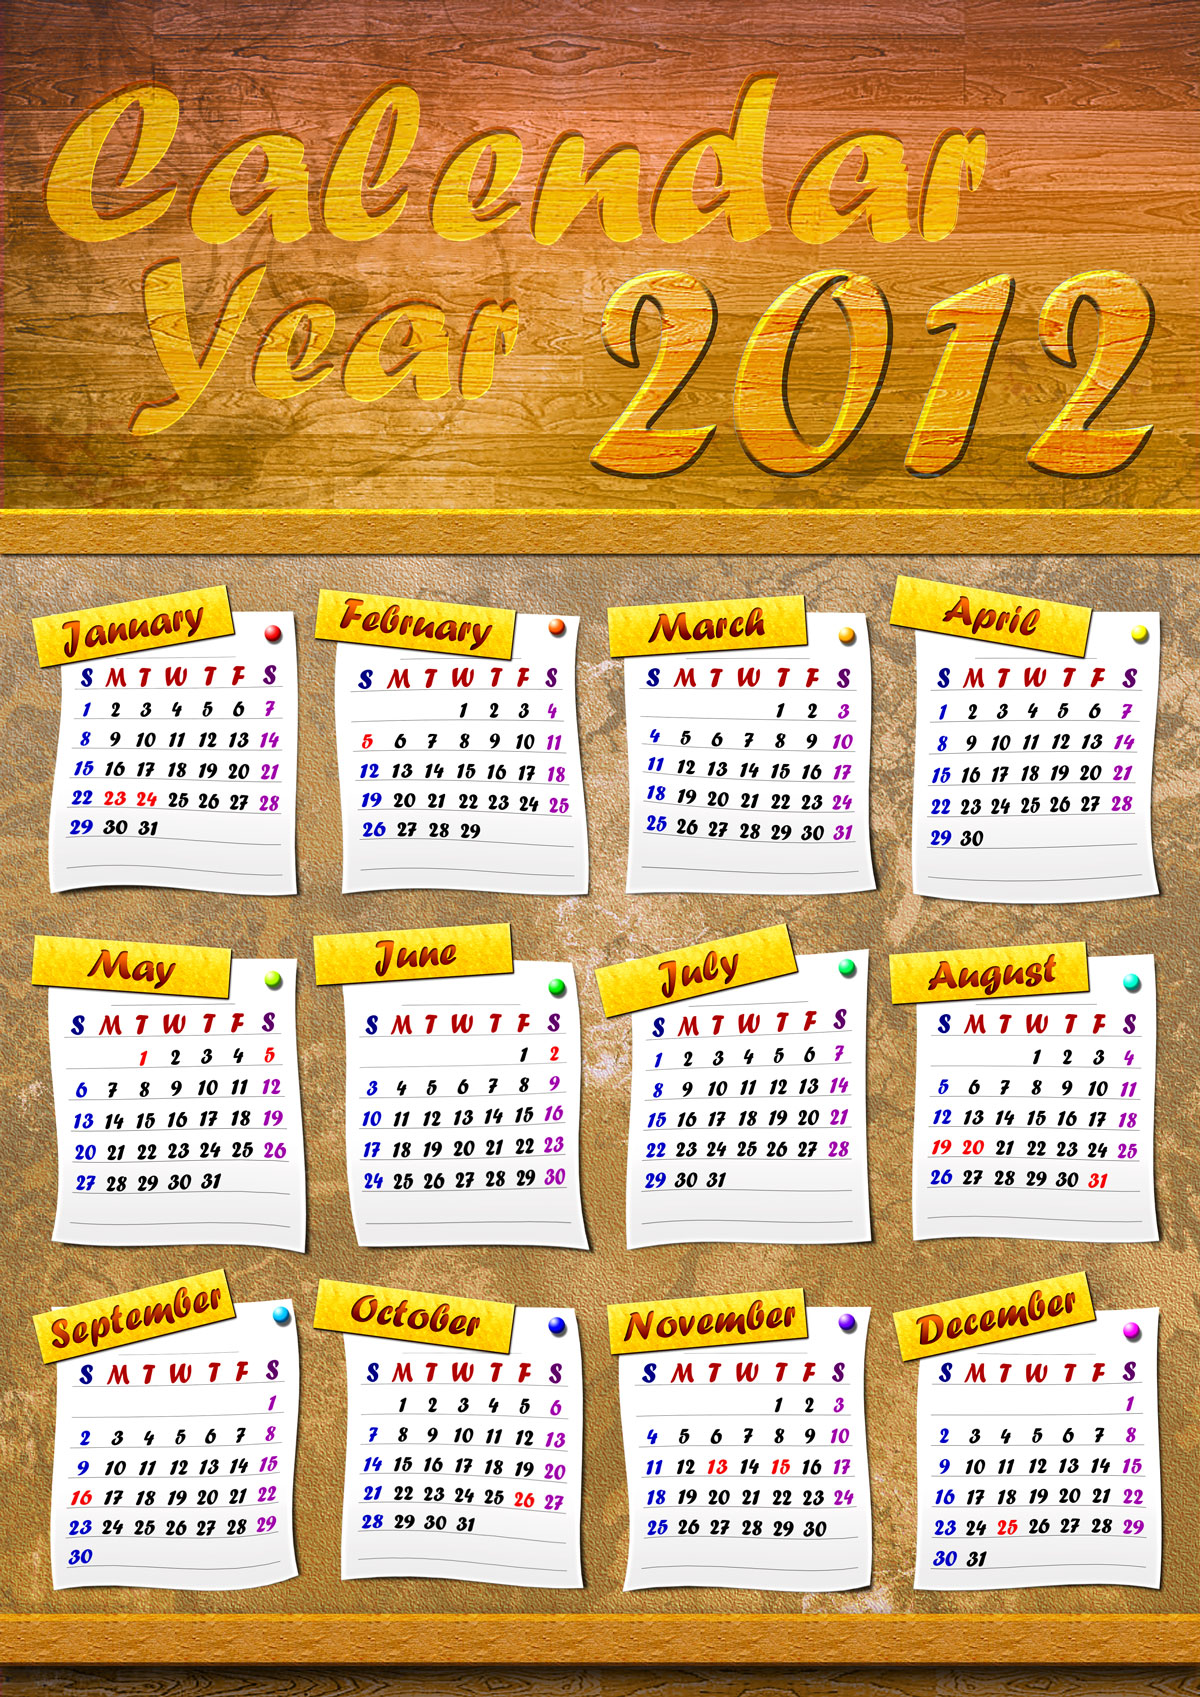 Corkboard Calendar Year 2012 Design 03